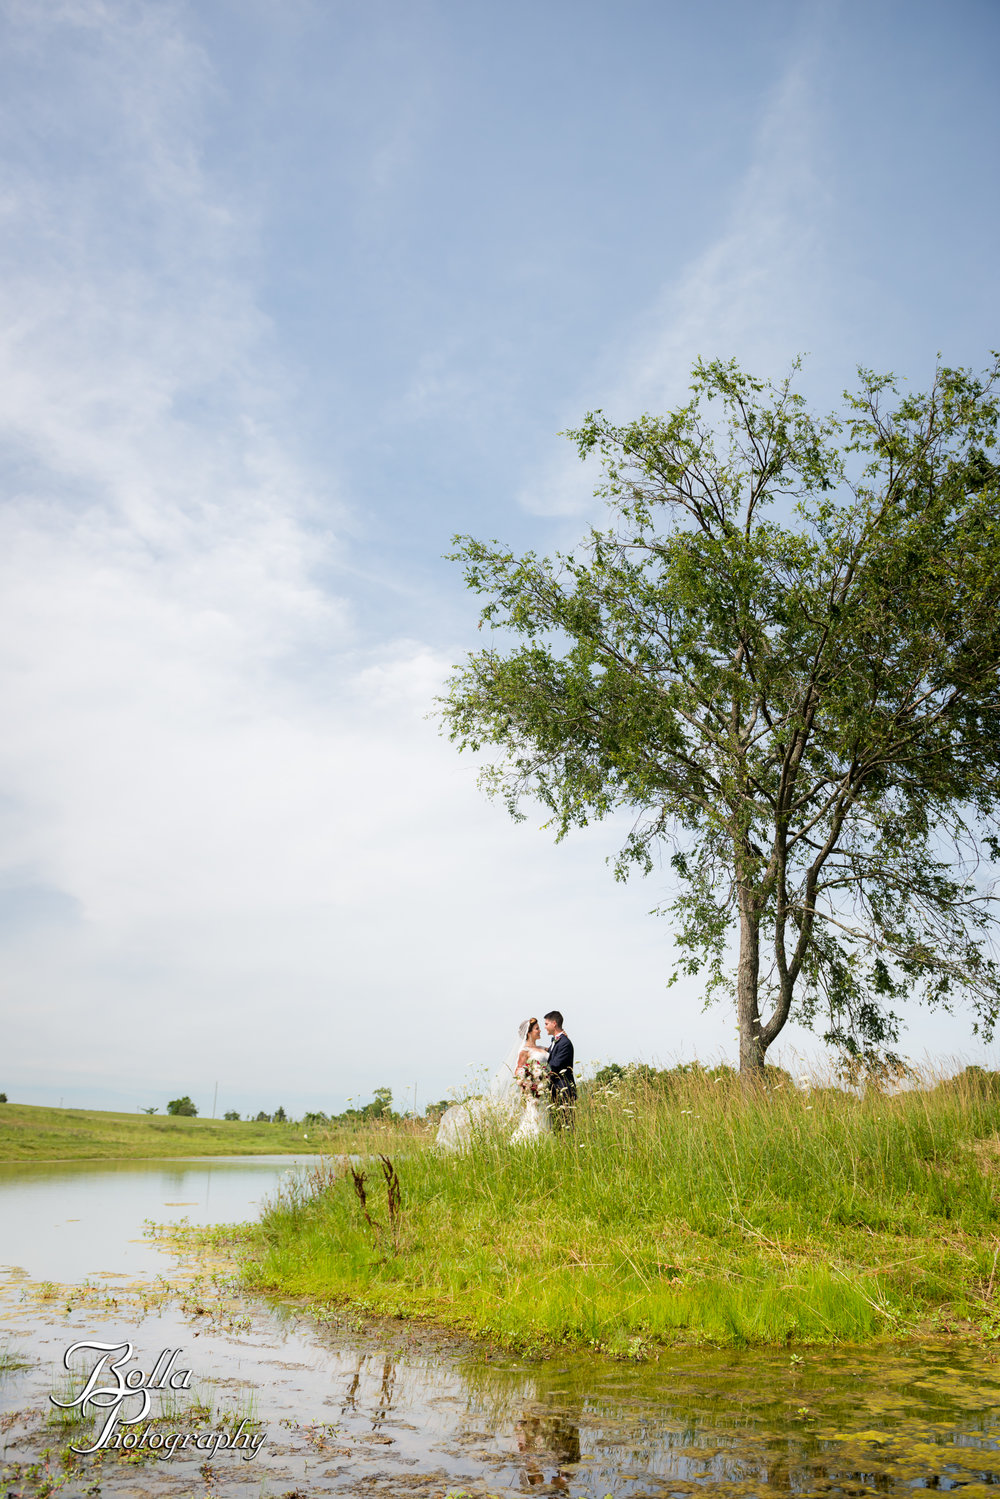 Bolla_photography_edwardsville_wedding_photographer_st_louis_weddings_Chaumette_winery_Mikusch-0004.jpg